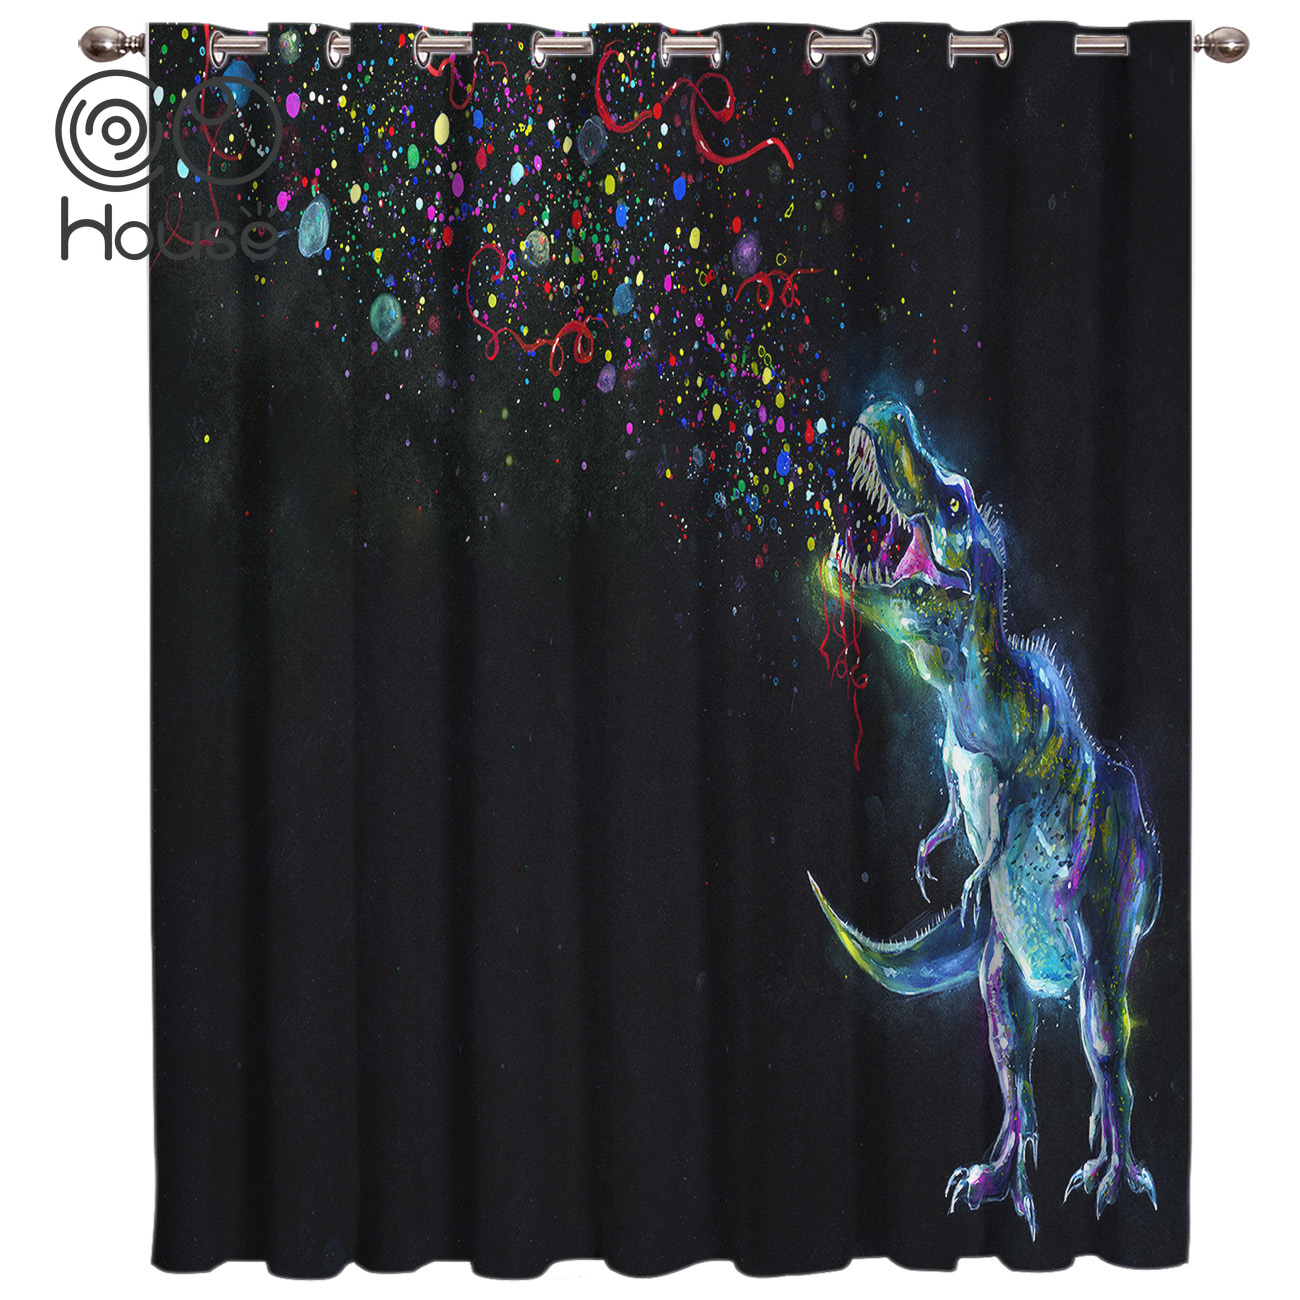 Dinosaur Curtains Blackout Bathroom Kitchen Kids Window Treatment Hardware Sets Curtain Panels With Grommets